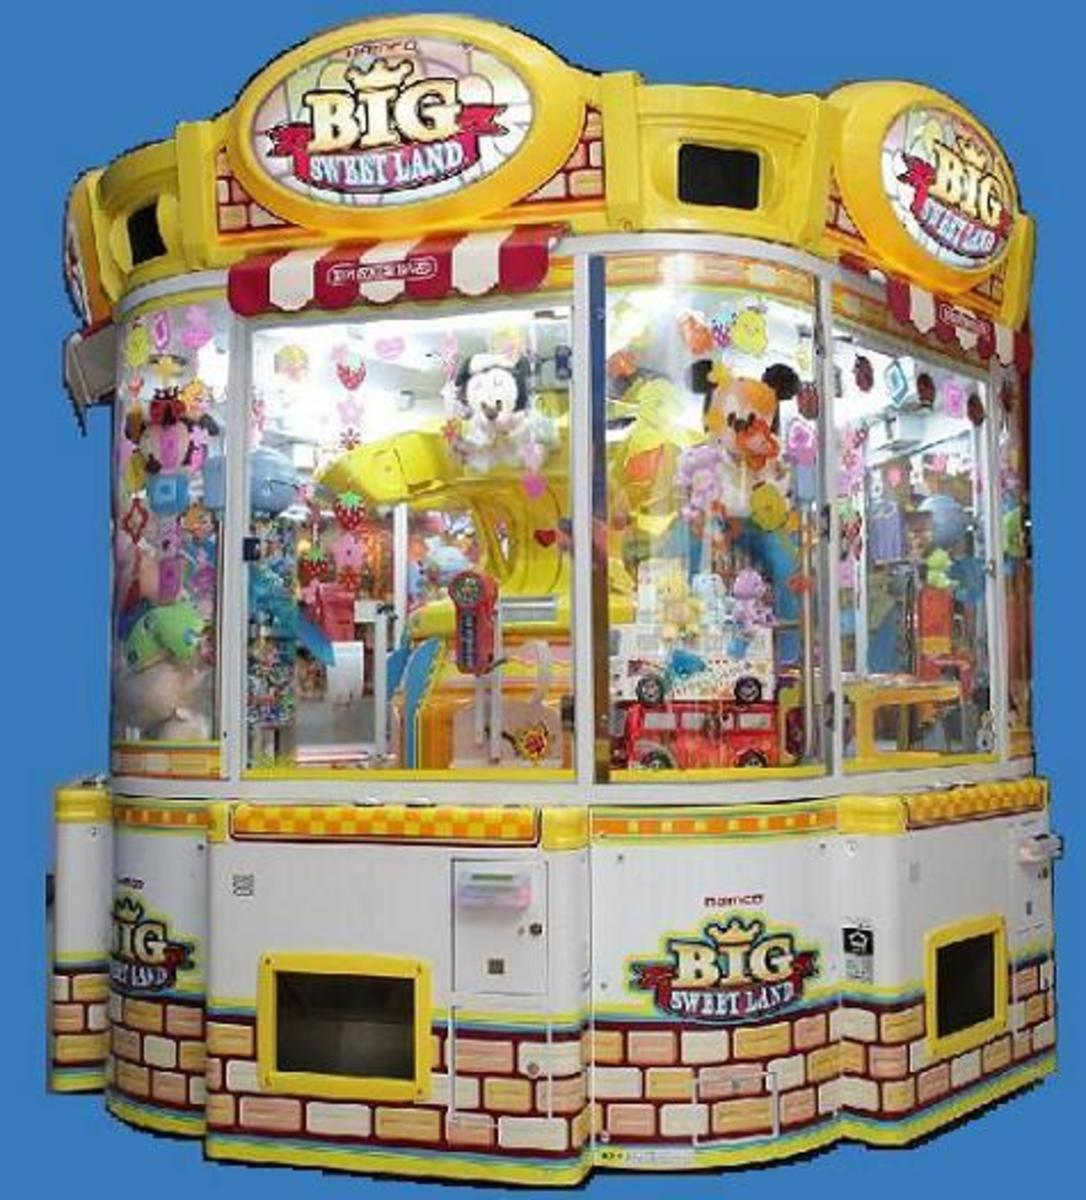 The Giant Big Sweet Land calling out for U...